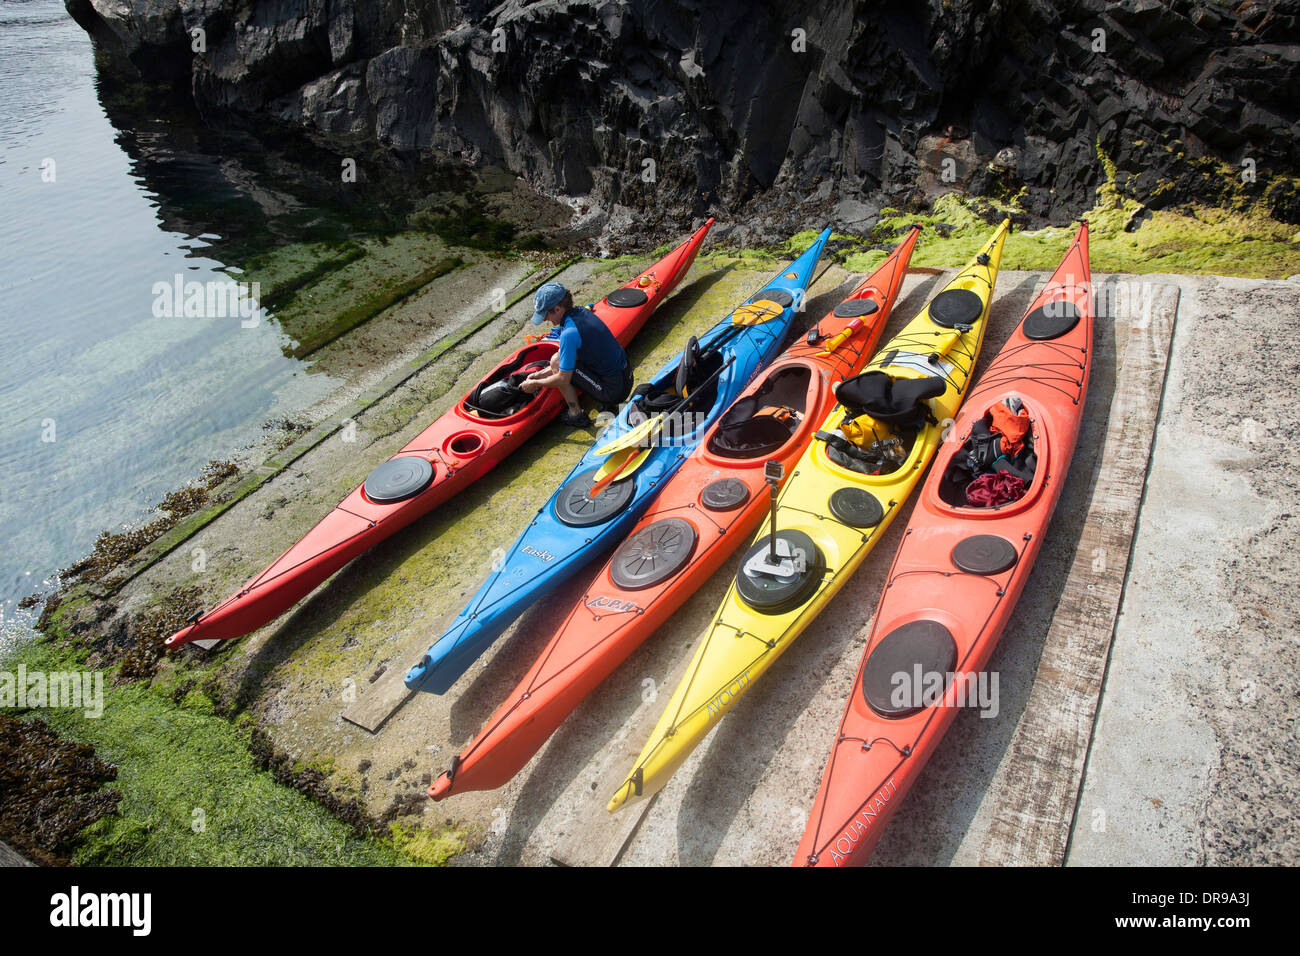 Sea kayaks on the slipway at Malin Beg, County Donegal, Ireland. - Stock Image